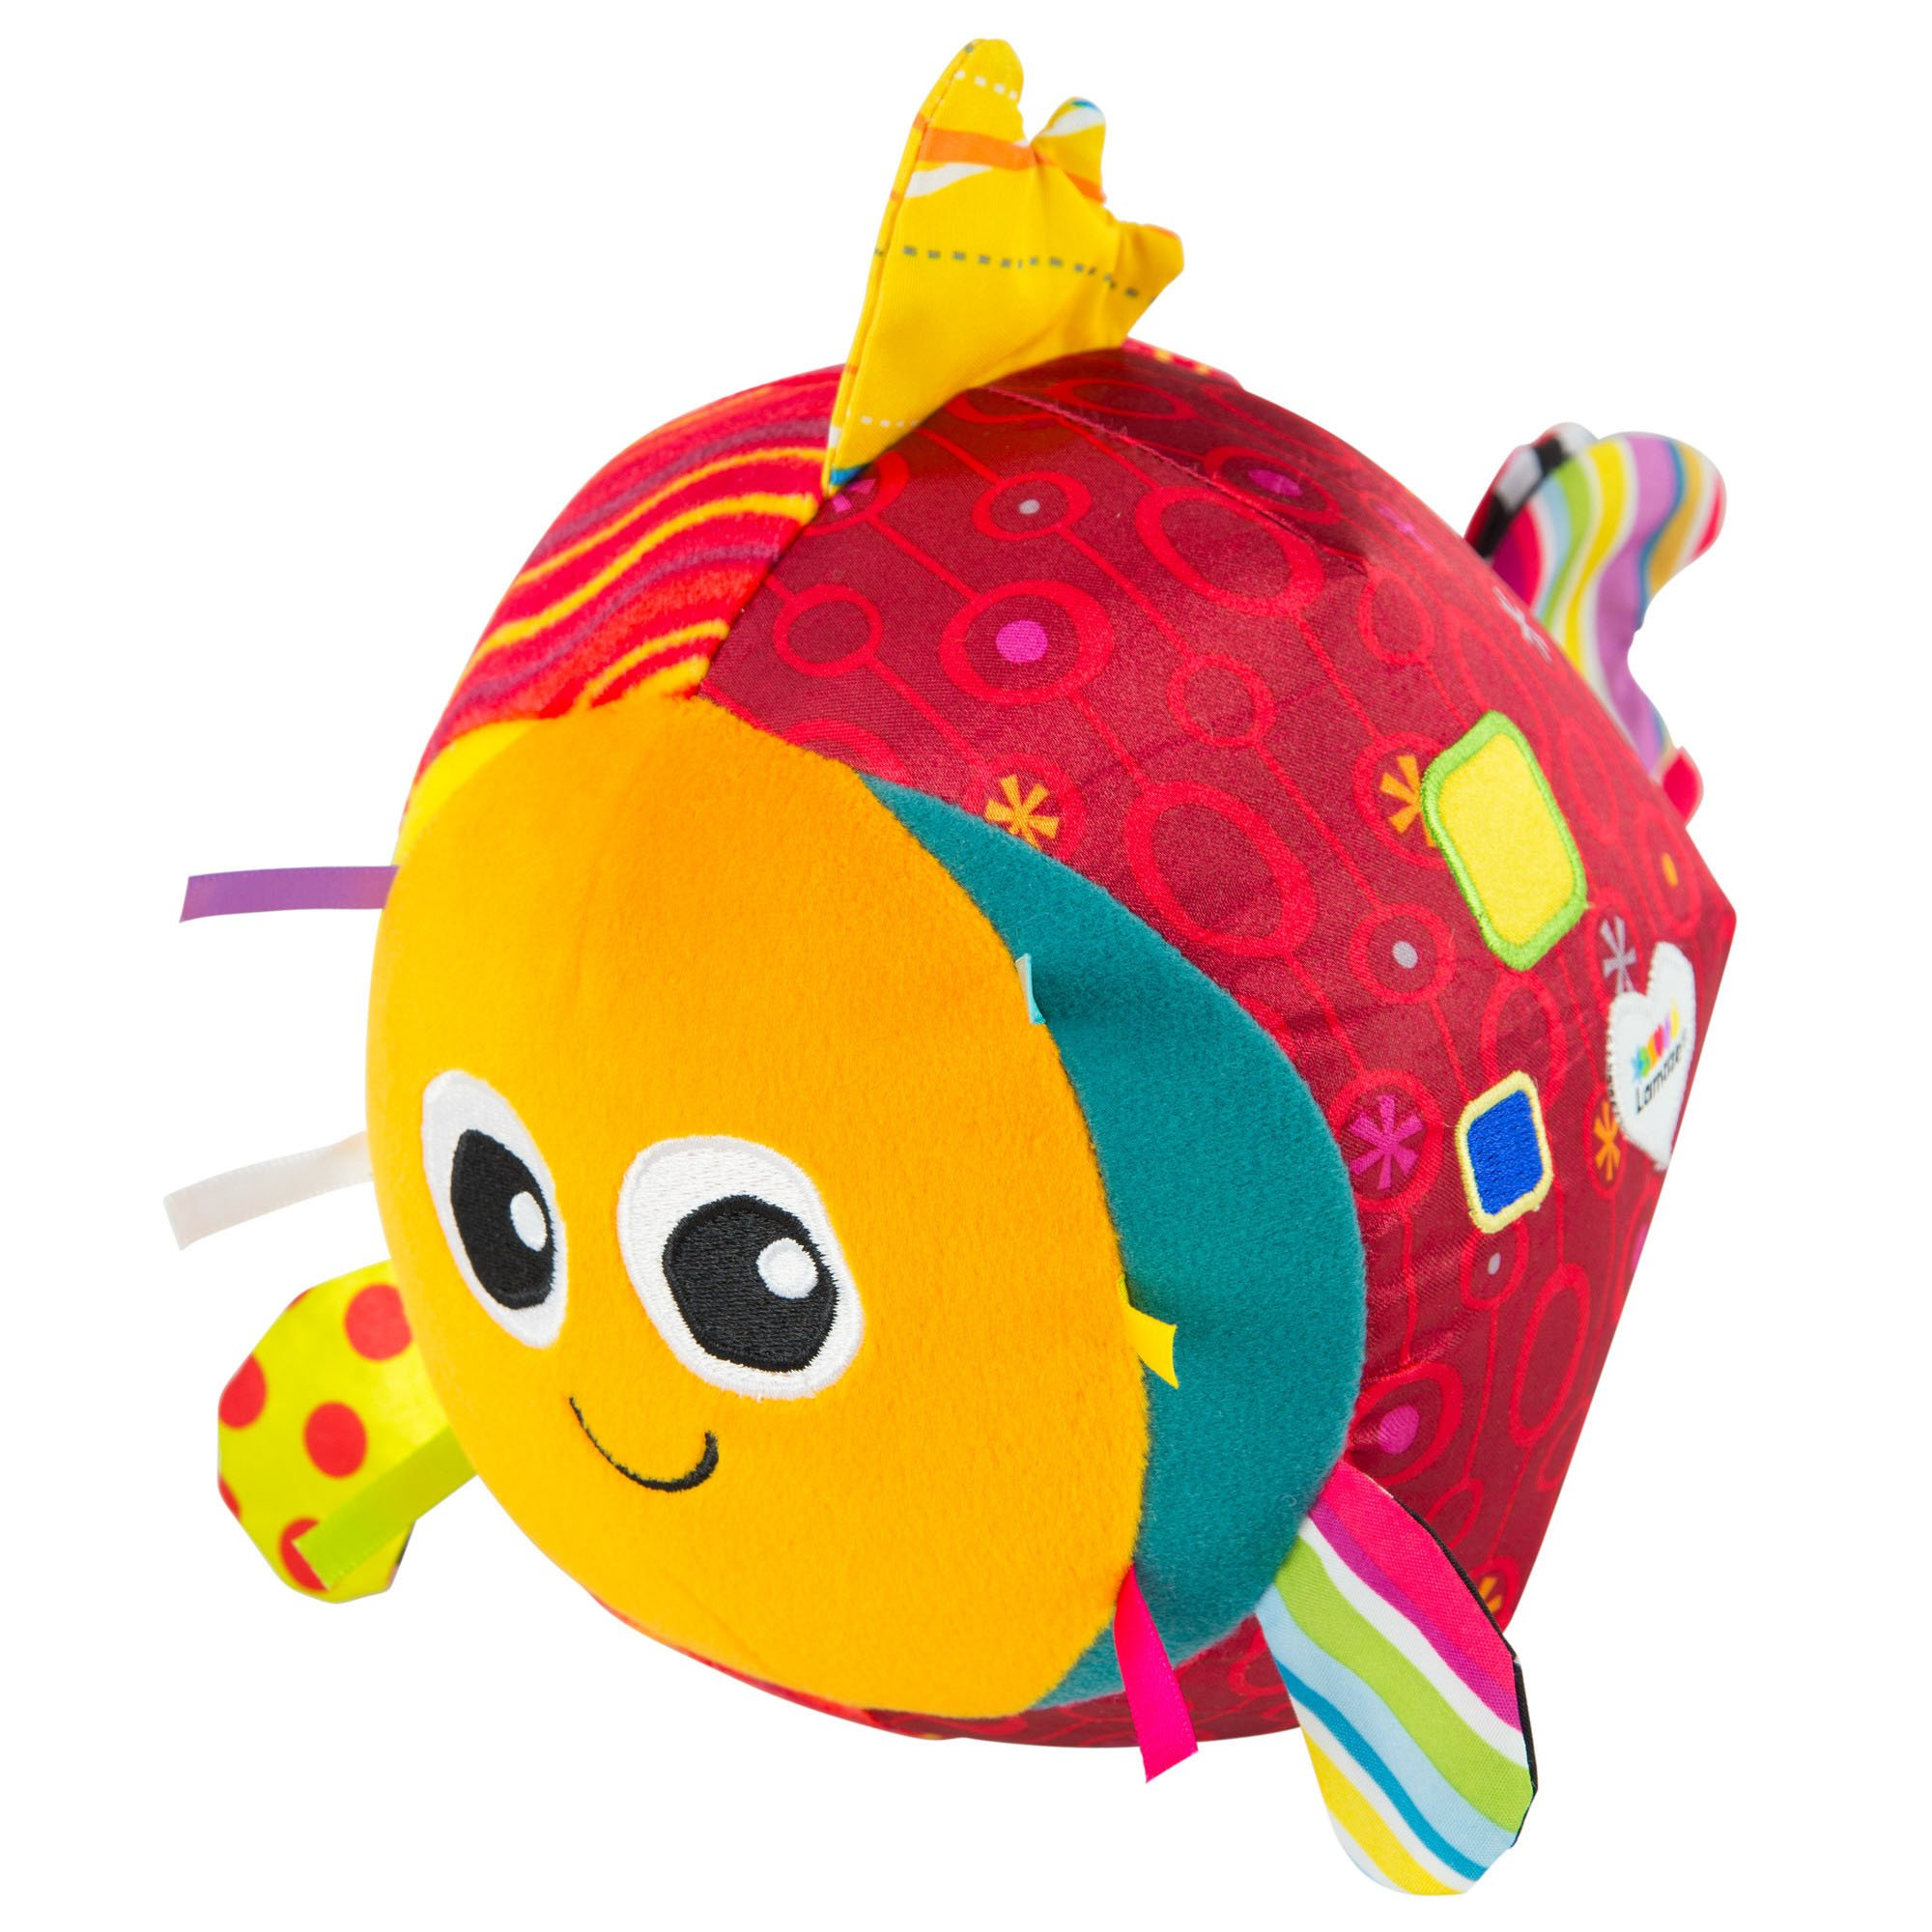 LAMAZE - Rolling Rosa Toy, Help Baby Reach, Push, and Get Crawling by Supporting Tummy Time with Bright Colors, Easy Motion, and Fun Chimes, 6 Months and Older